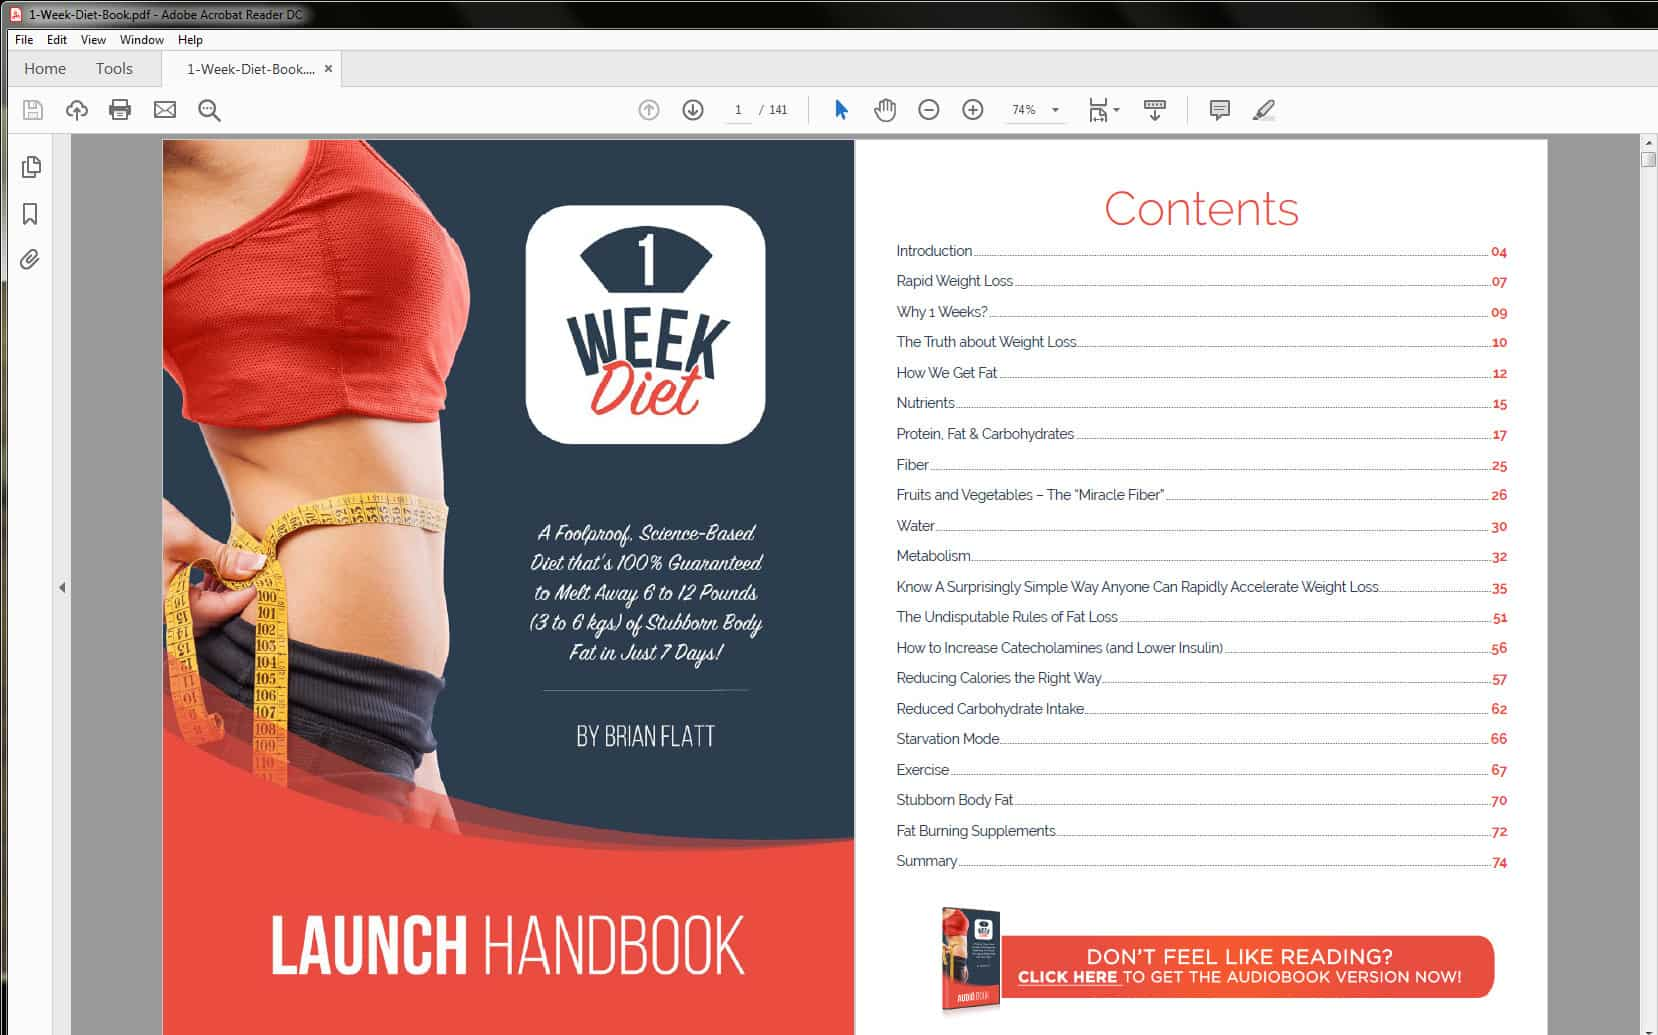 The Launch Handbook's Table of Contents